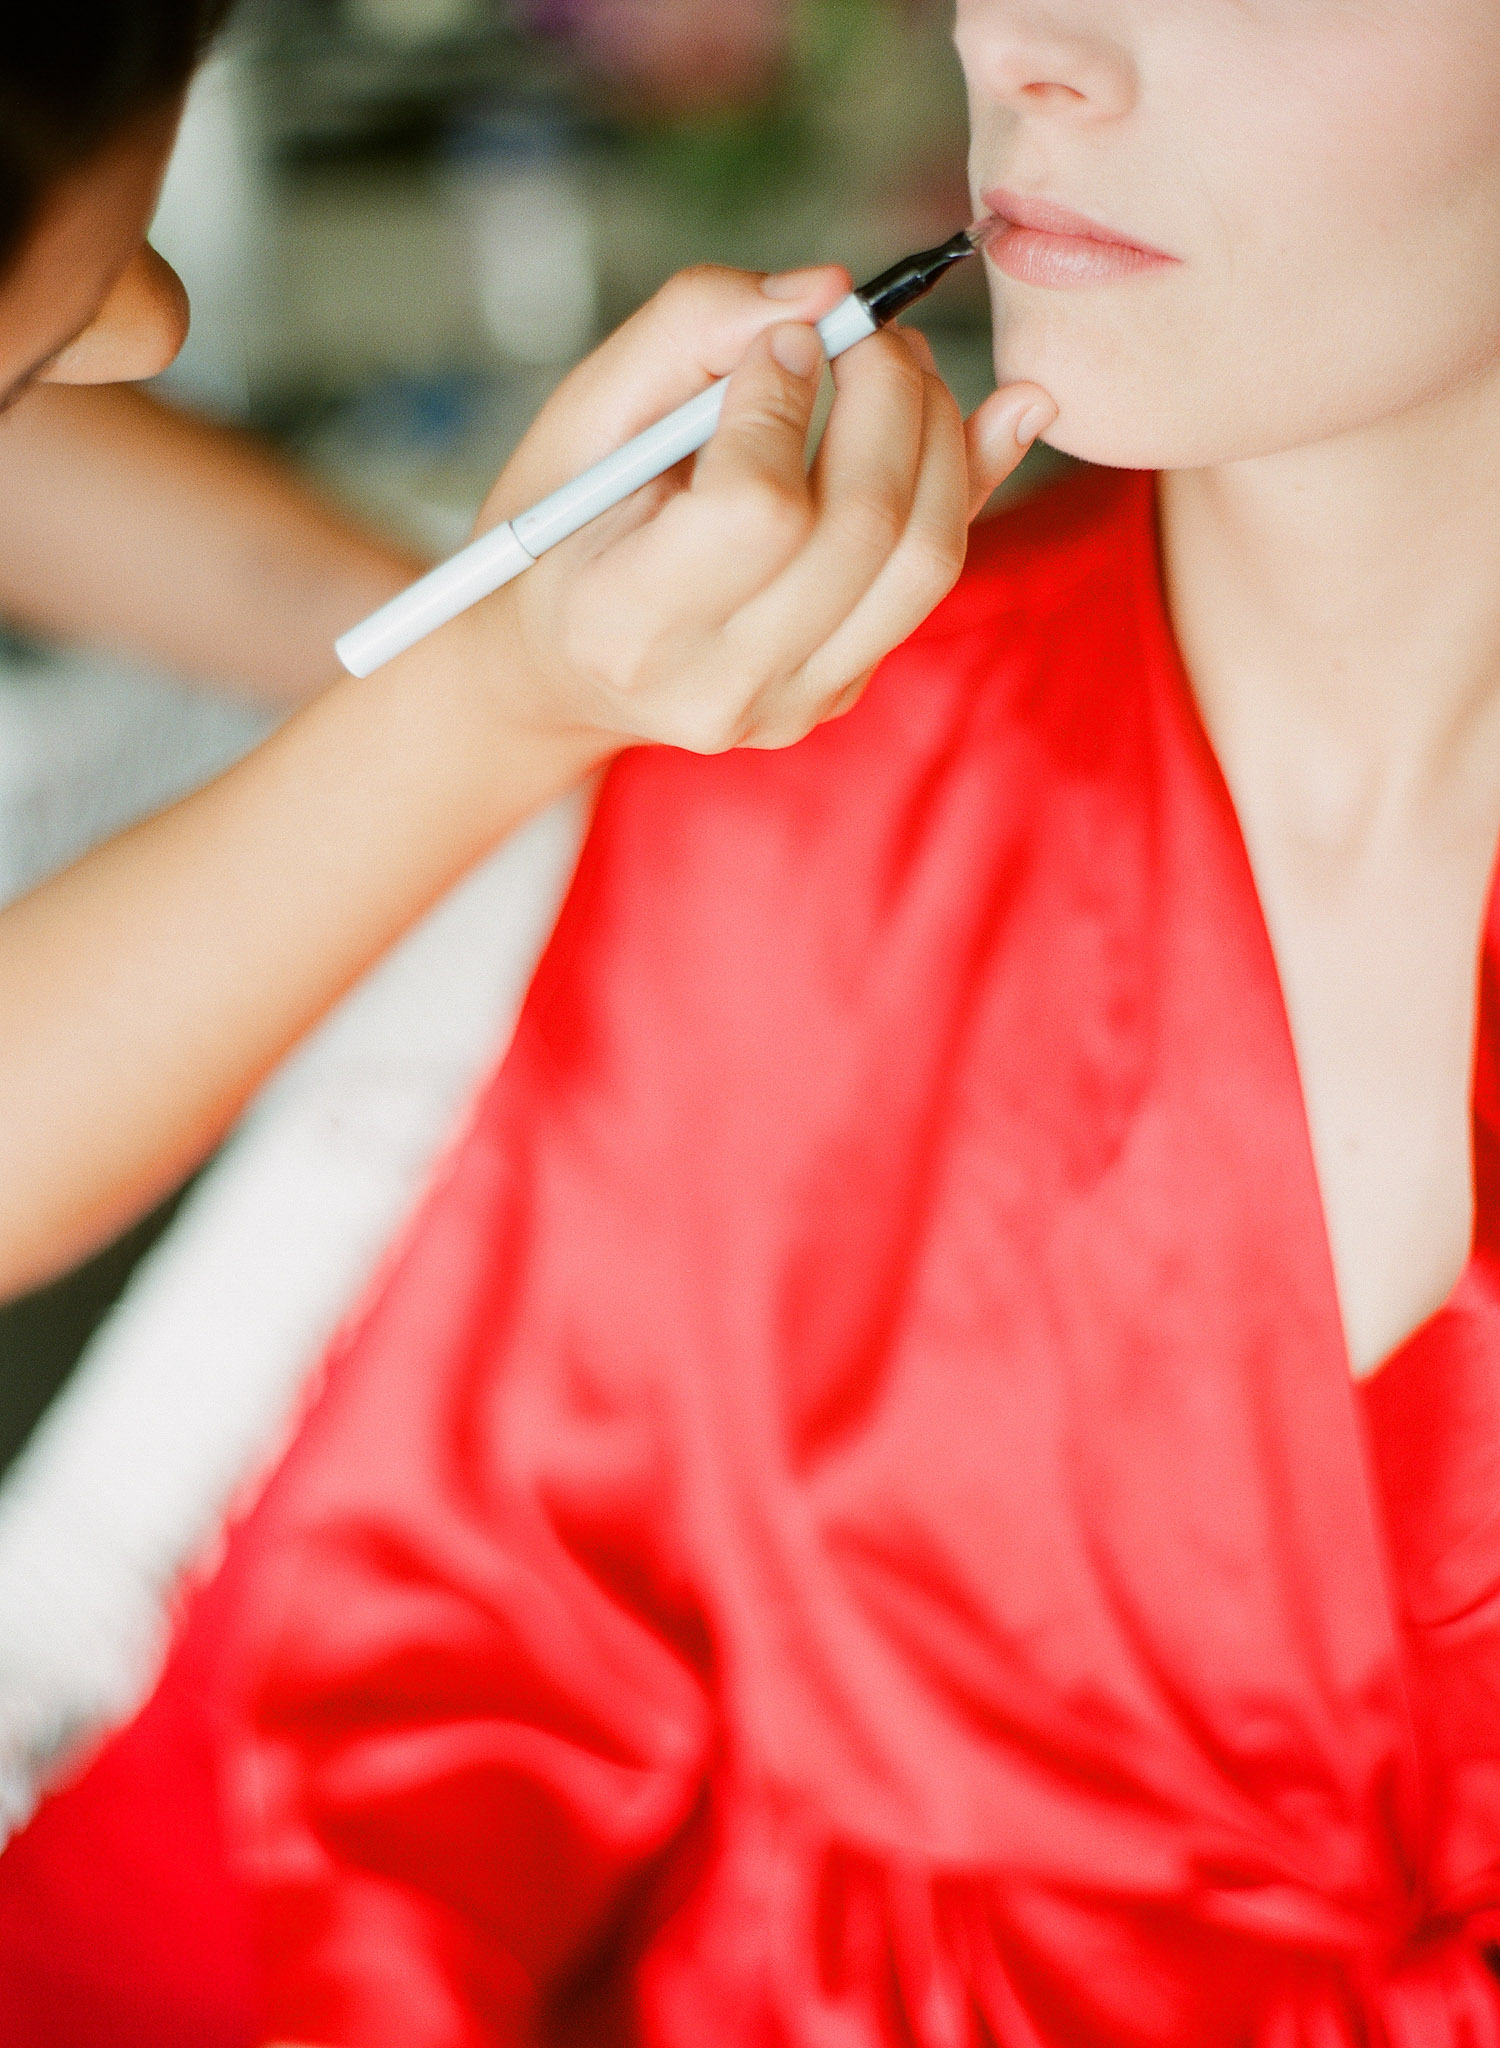 destination wedding photographer, Lexia Frank, a film photographer for weddings, photographs this destination wedding at vieques island at the W hotel, as a bride gets her makeup done at this vieques island wedding